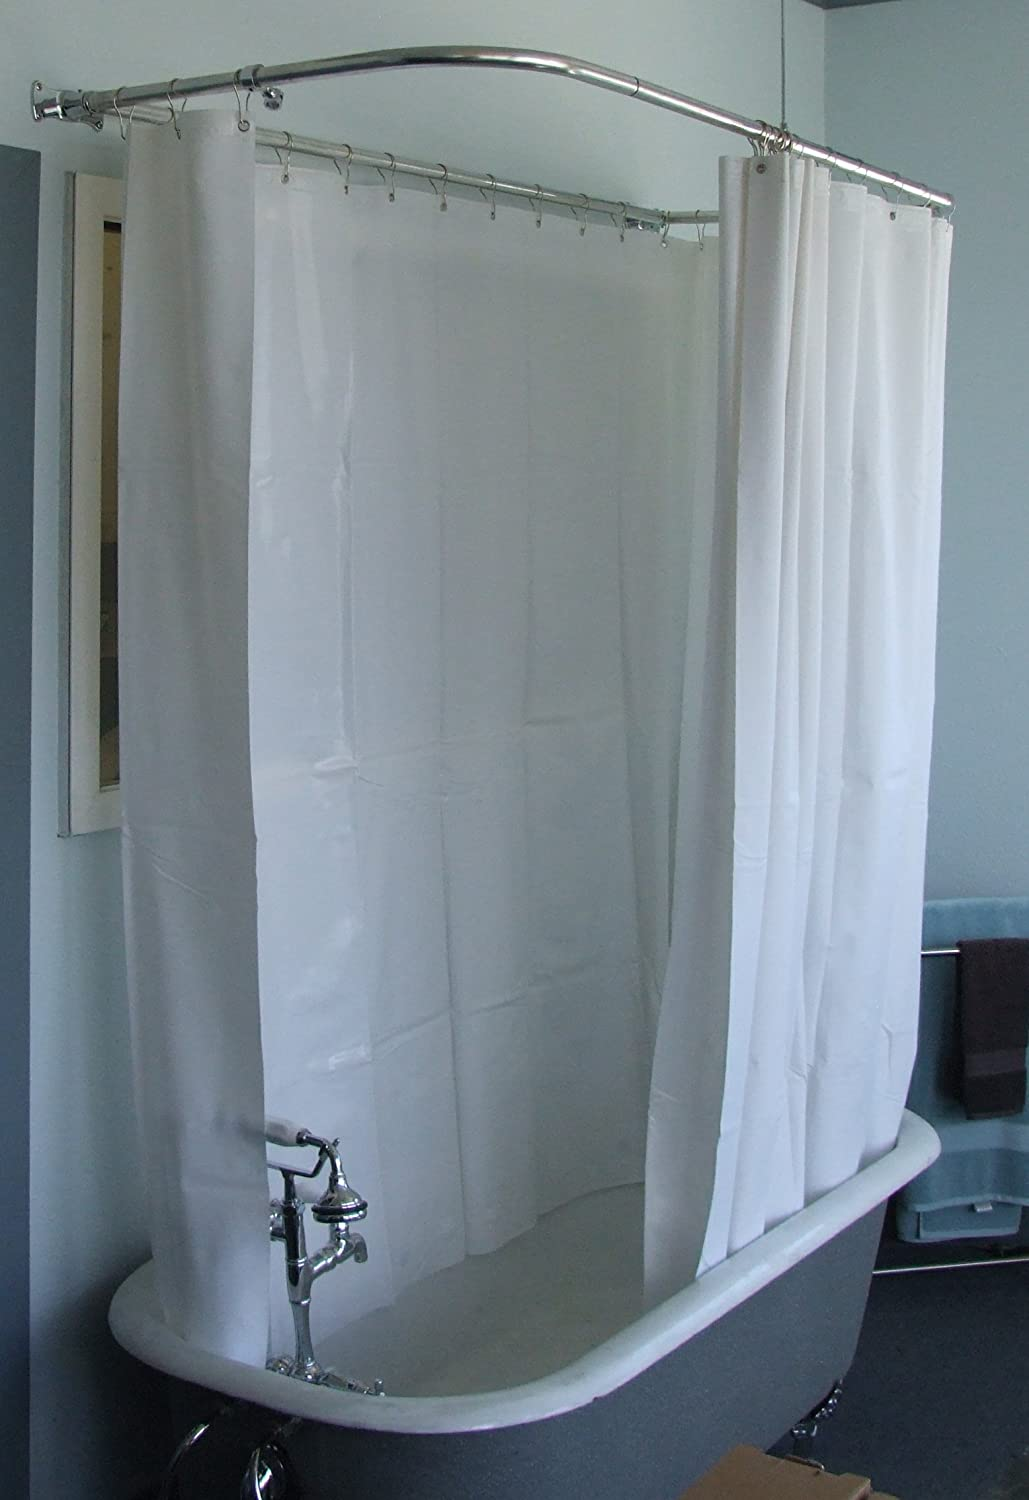 clawfoot tub shower curtain rod